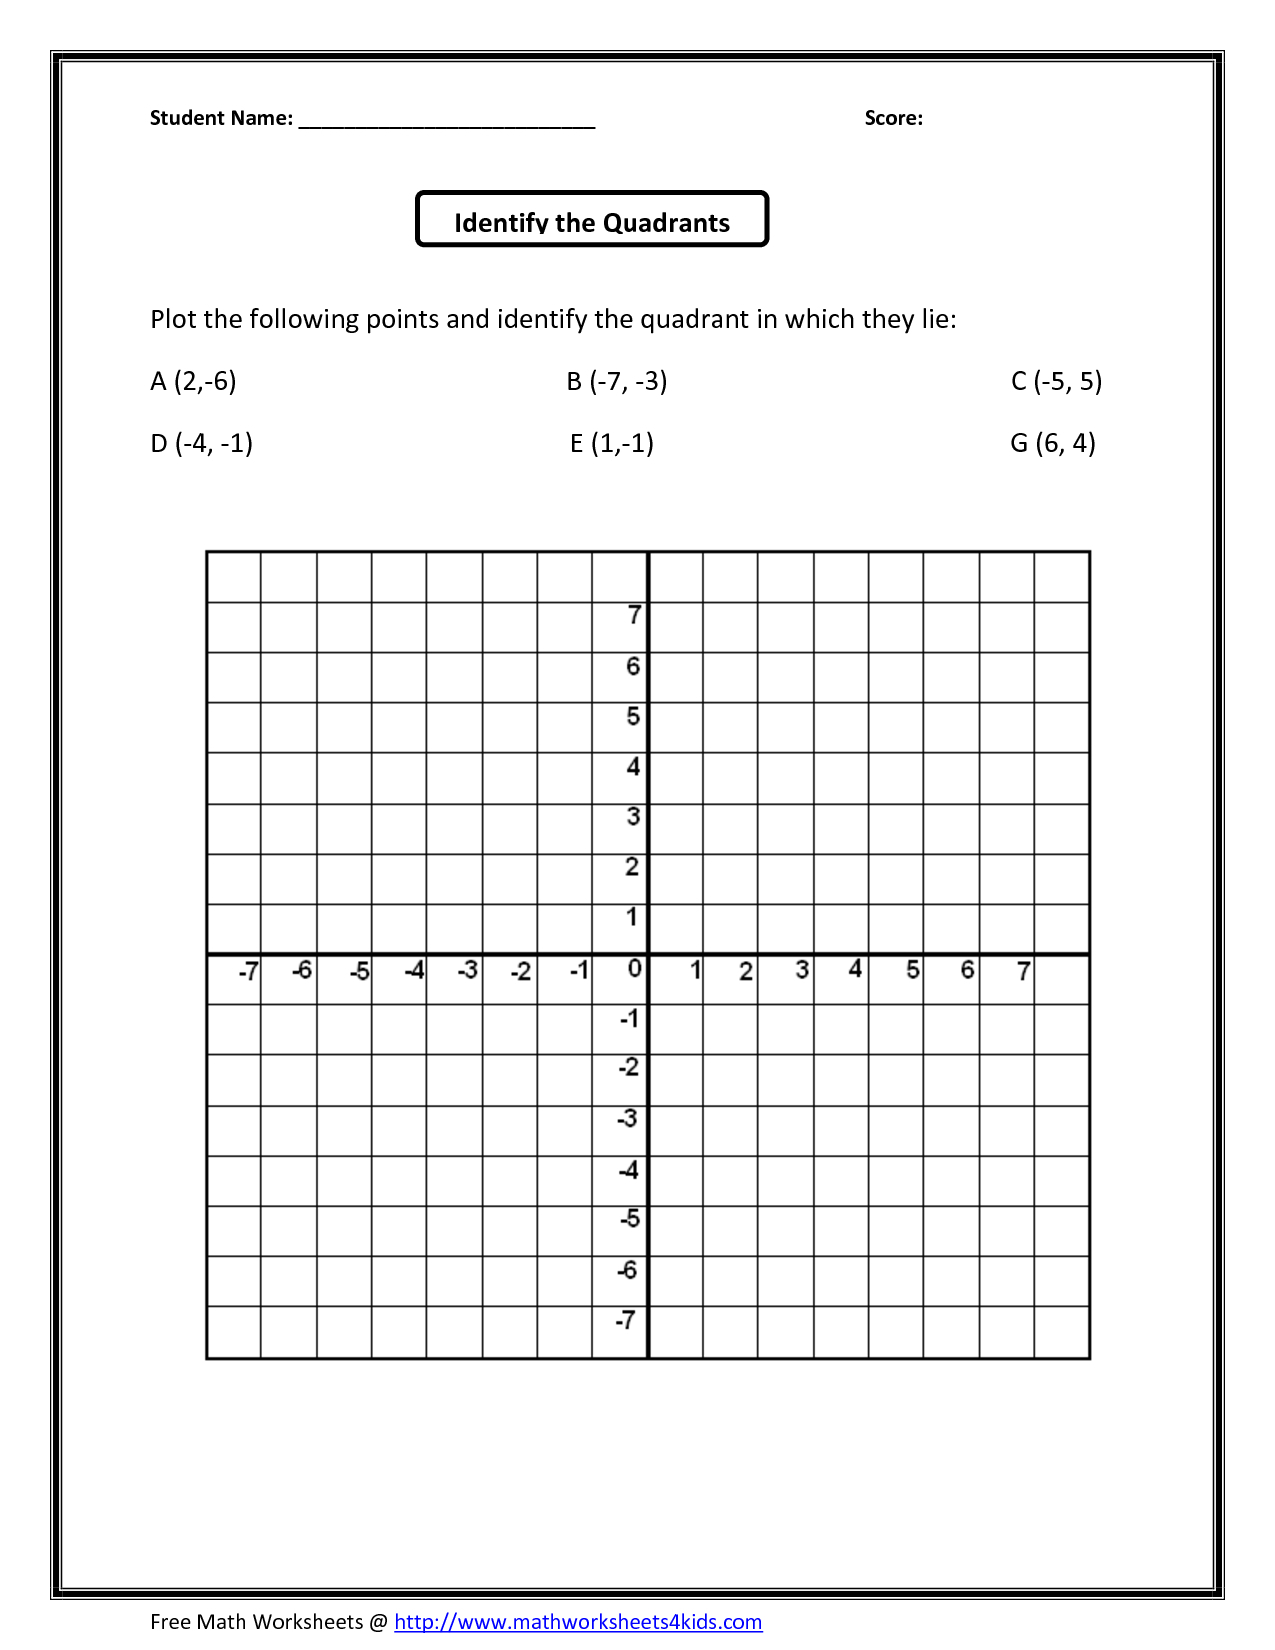 Math : Coordinate Plane Grid Coordinate Template 0 To 12 2 - Free | Printable Grids Worksheets